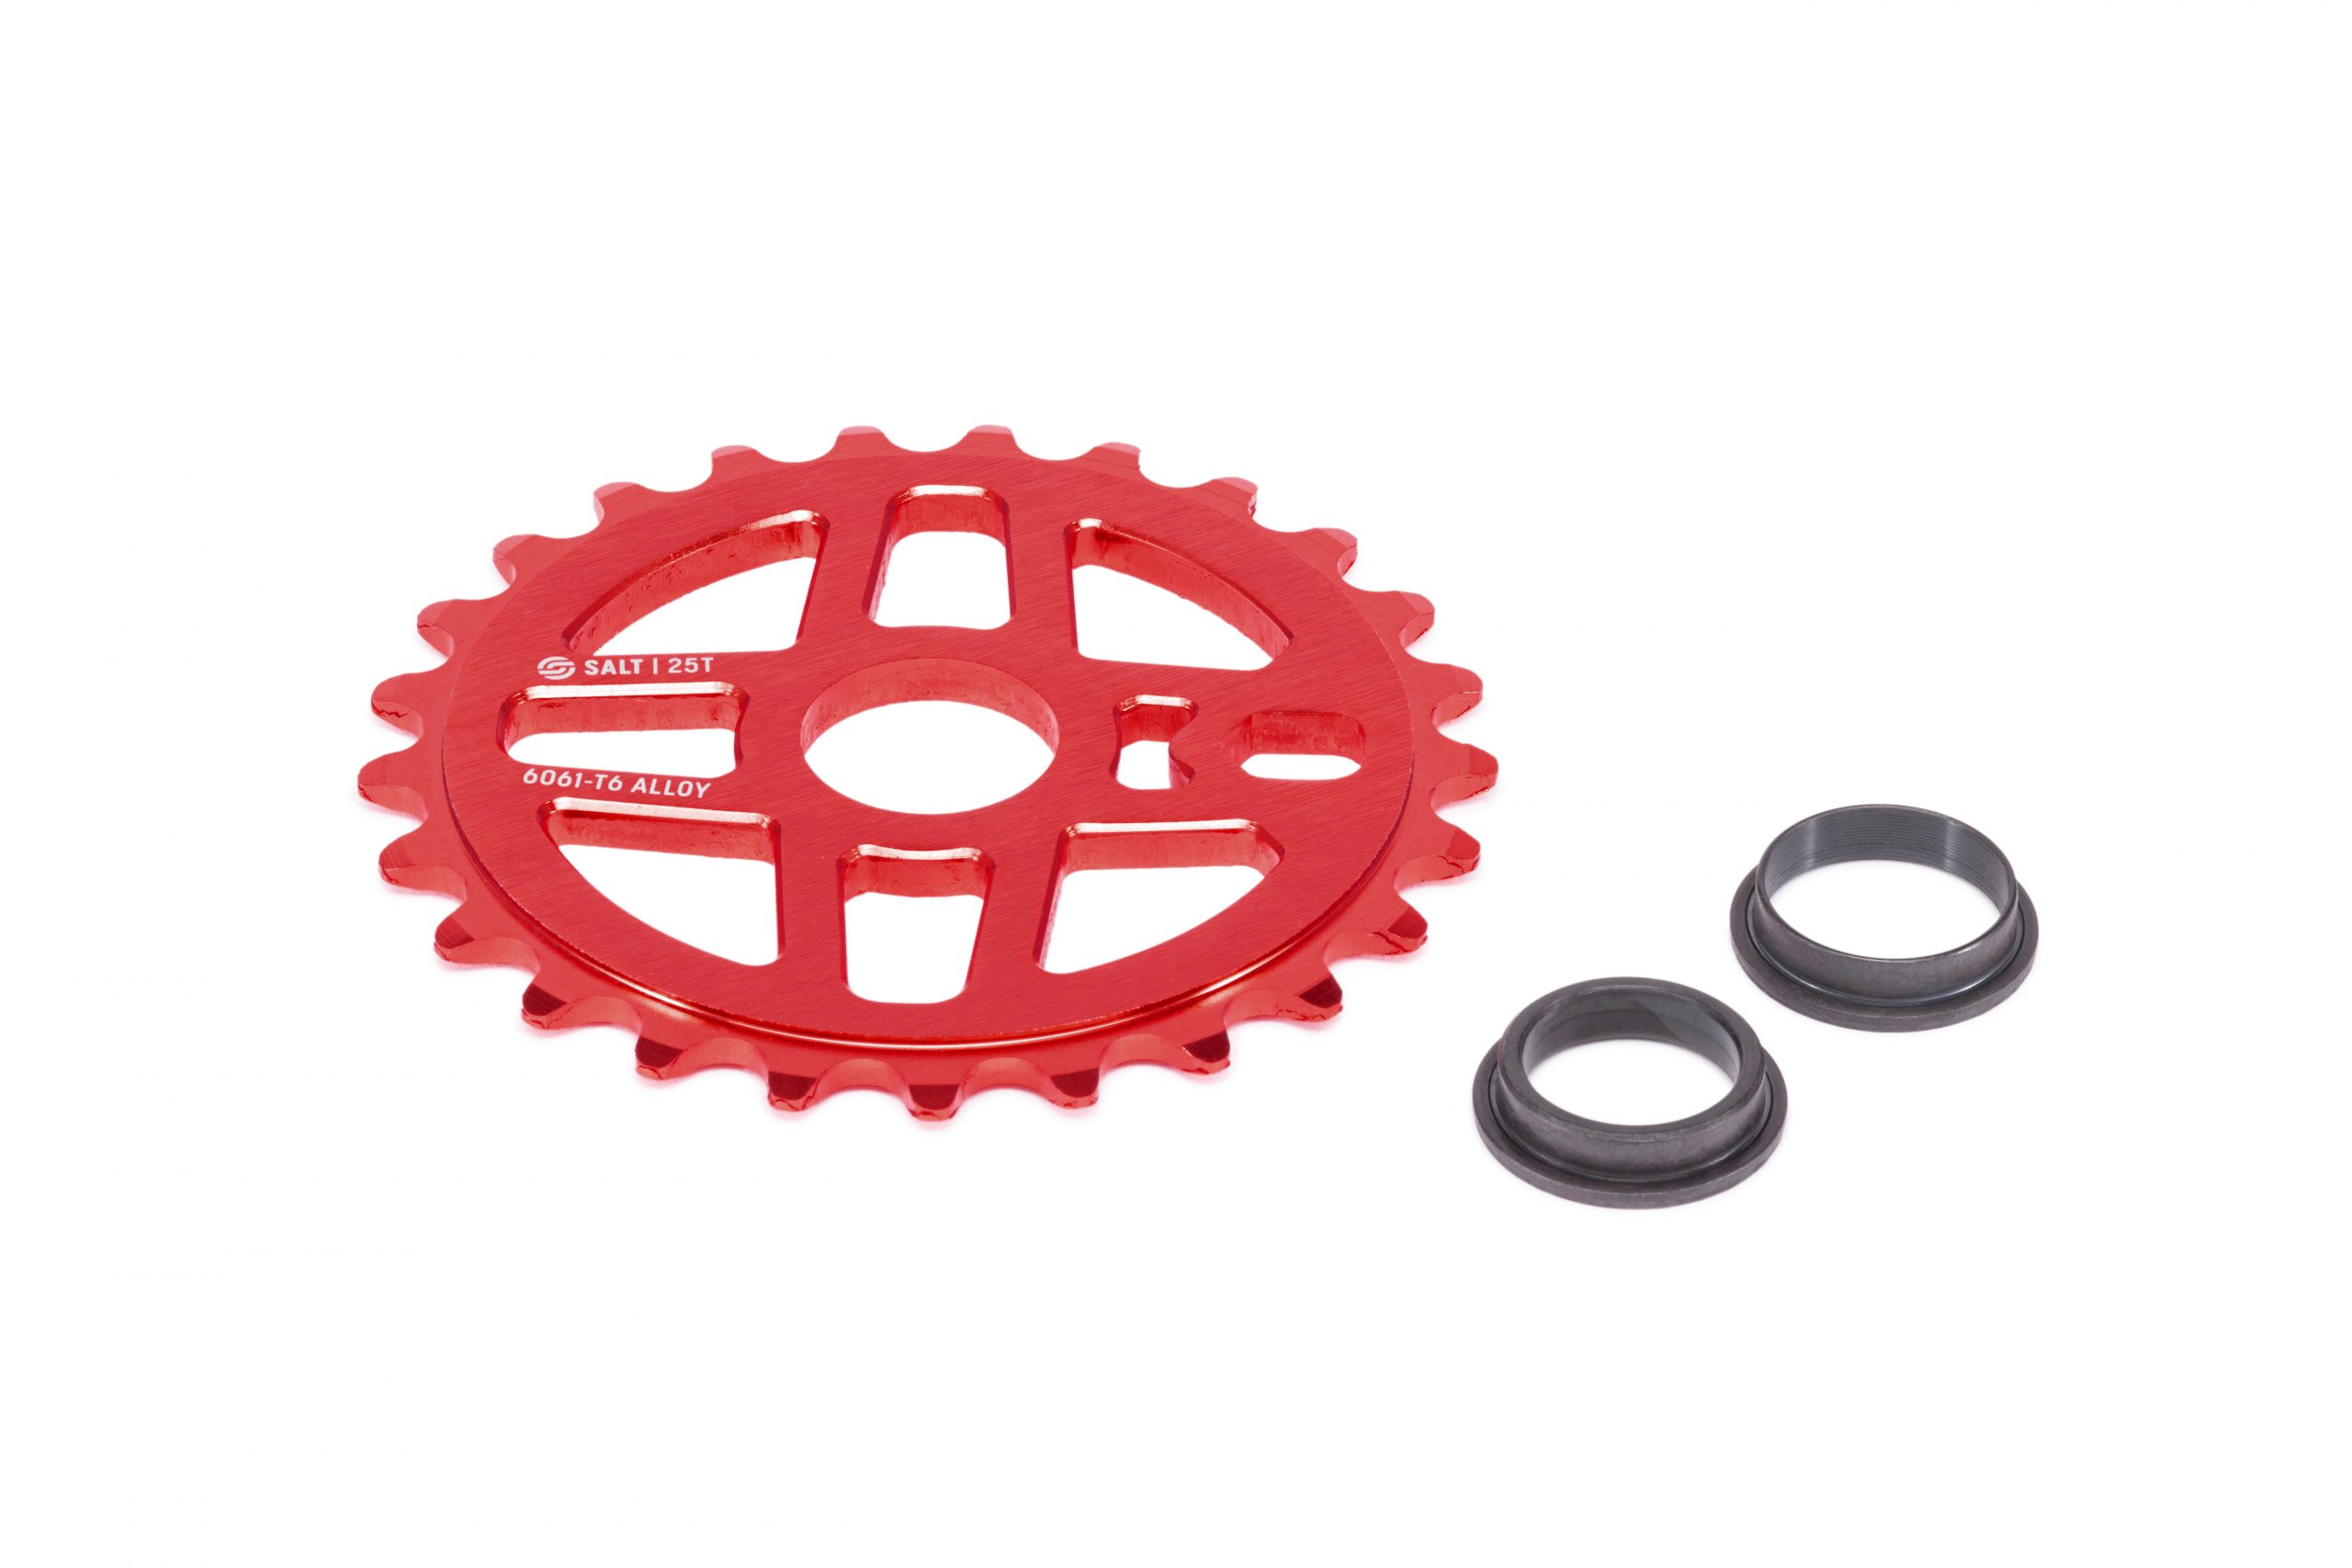 Salt_Pro_sprocket_25t_red-02